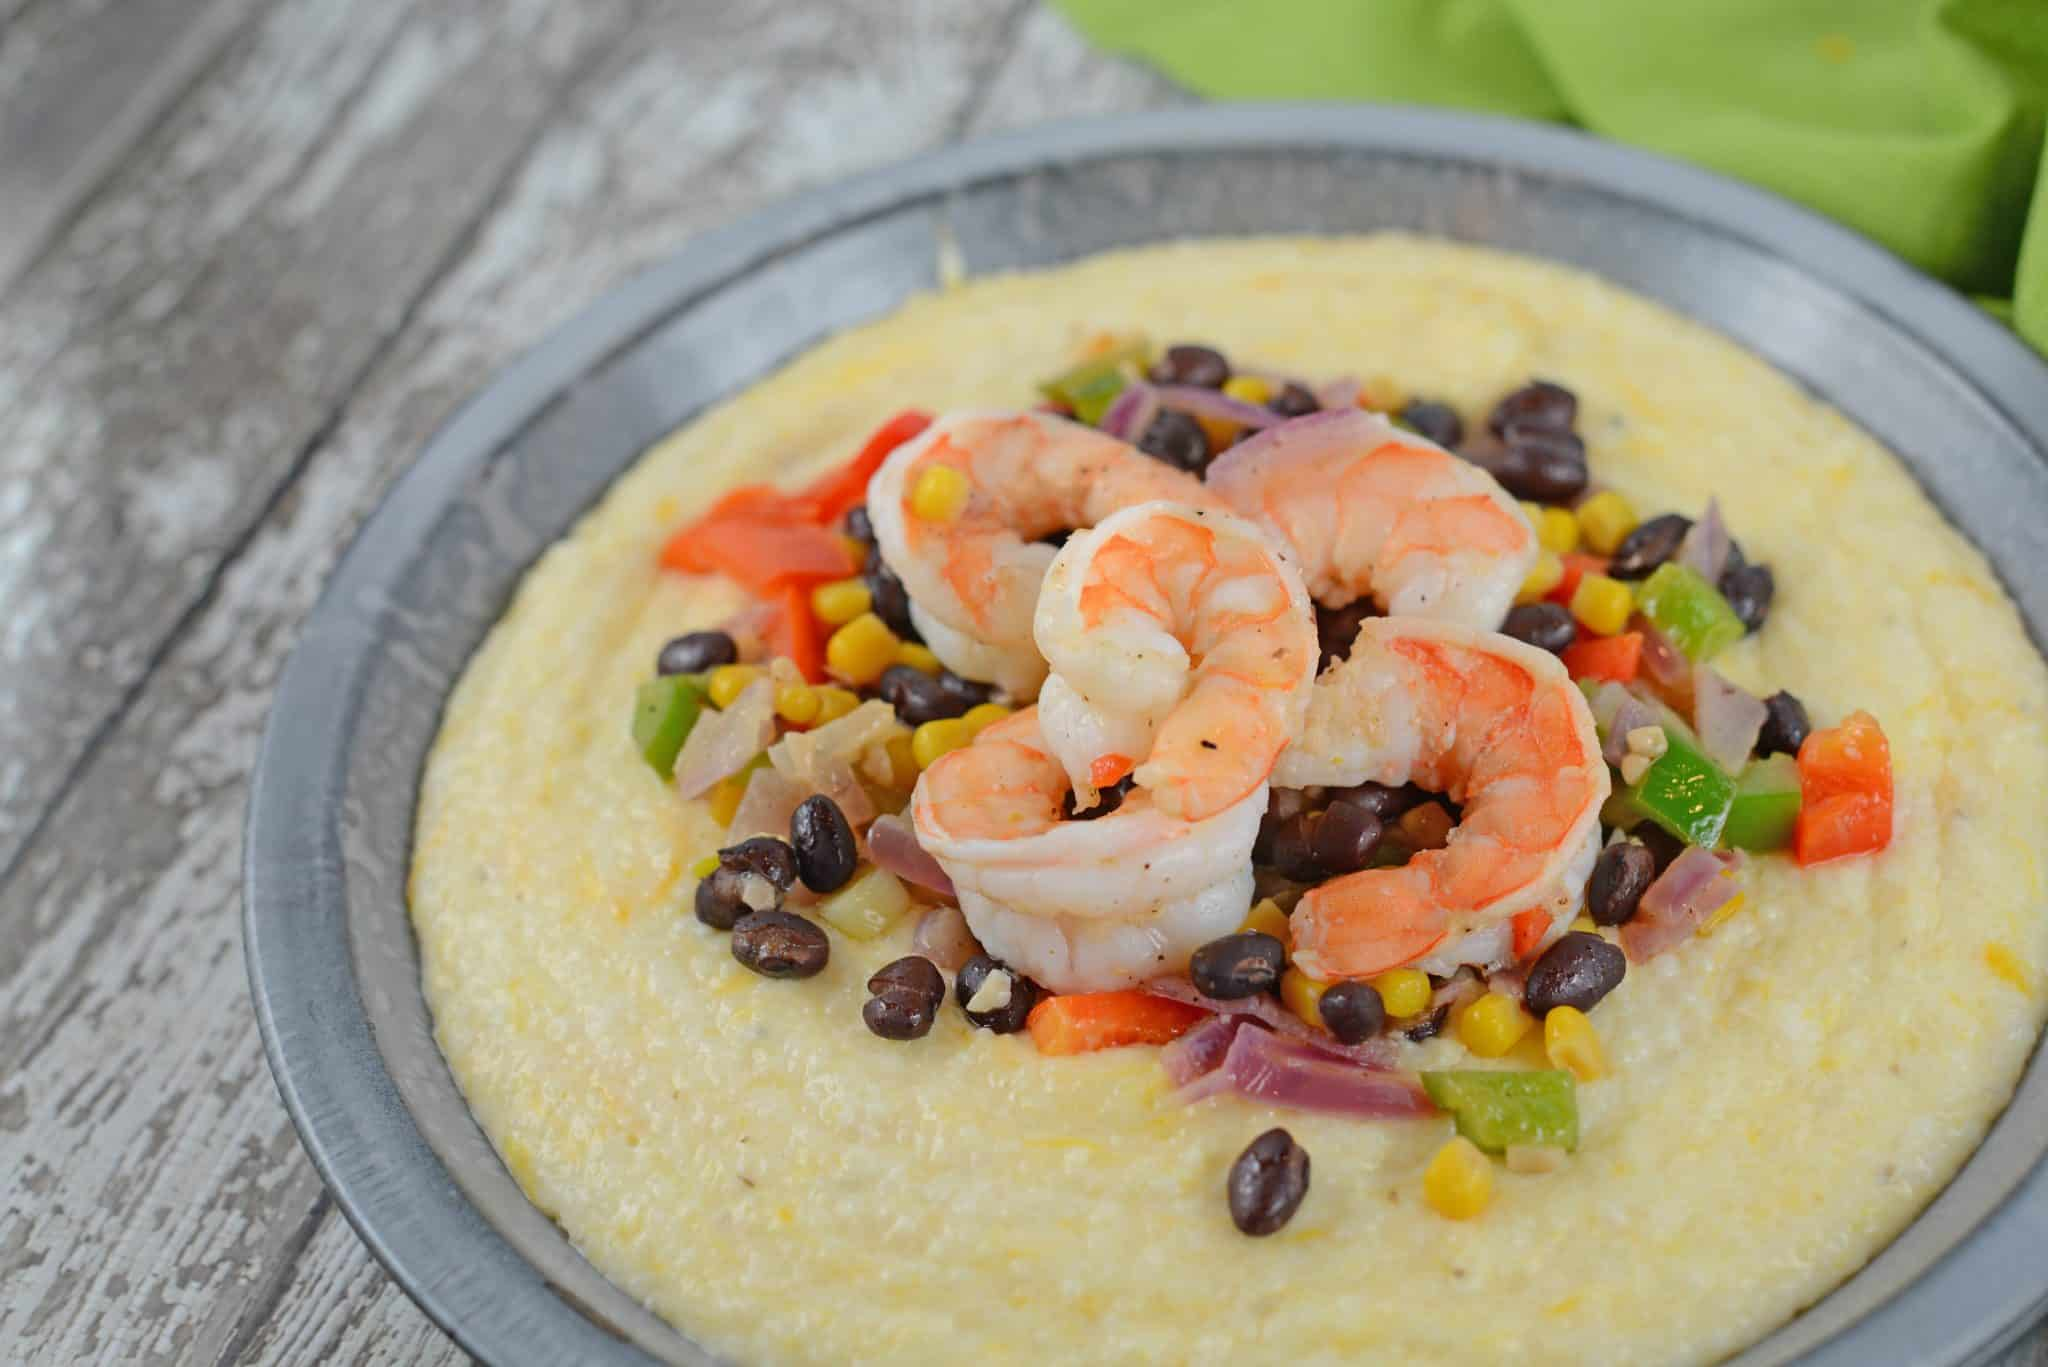 Southwestern Shrimp and Grits is a new take on an old classic combining Texas Caviar with Creamy Cheddar Grits and shrimp!